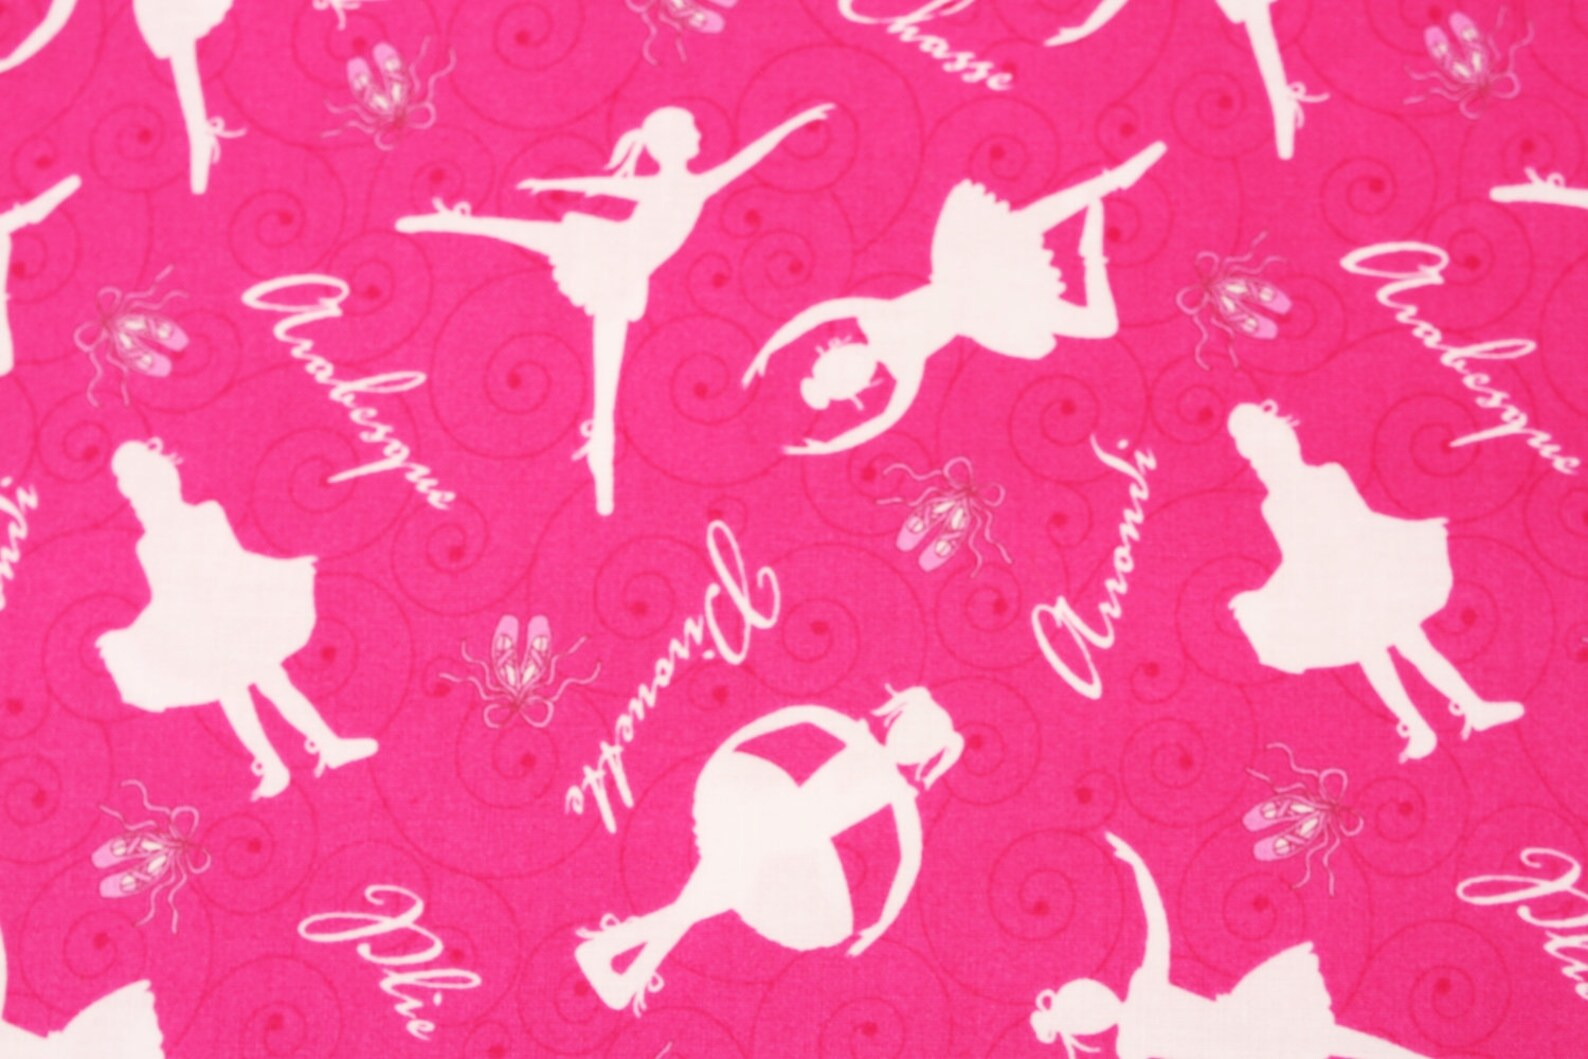 ballerina ballet shoes printed fabric by the half yard